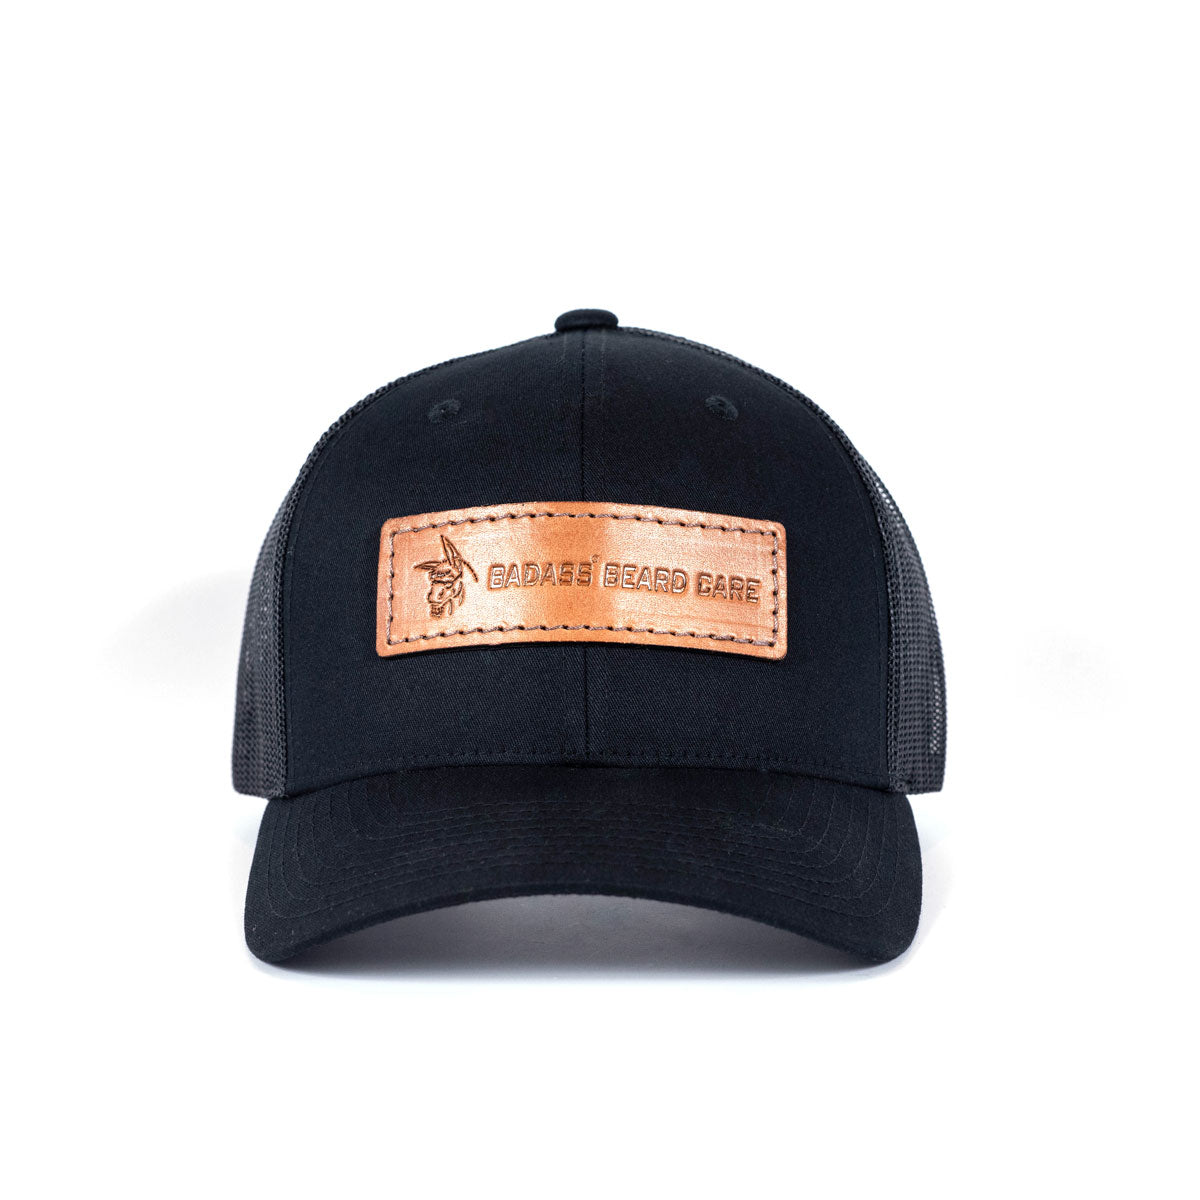 Badass Leather Patch Hat - Black